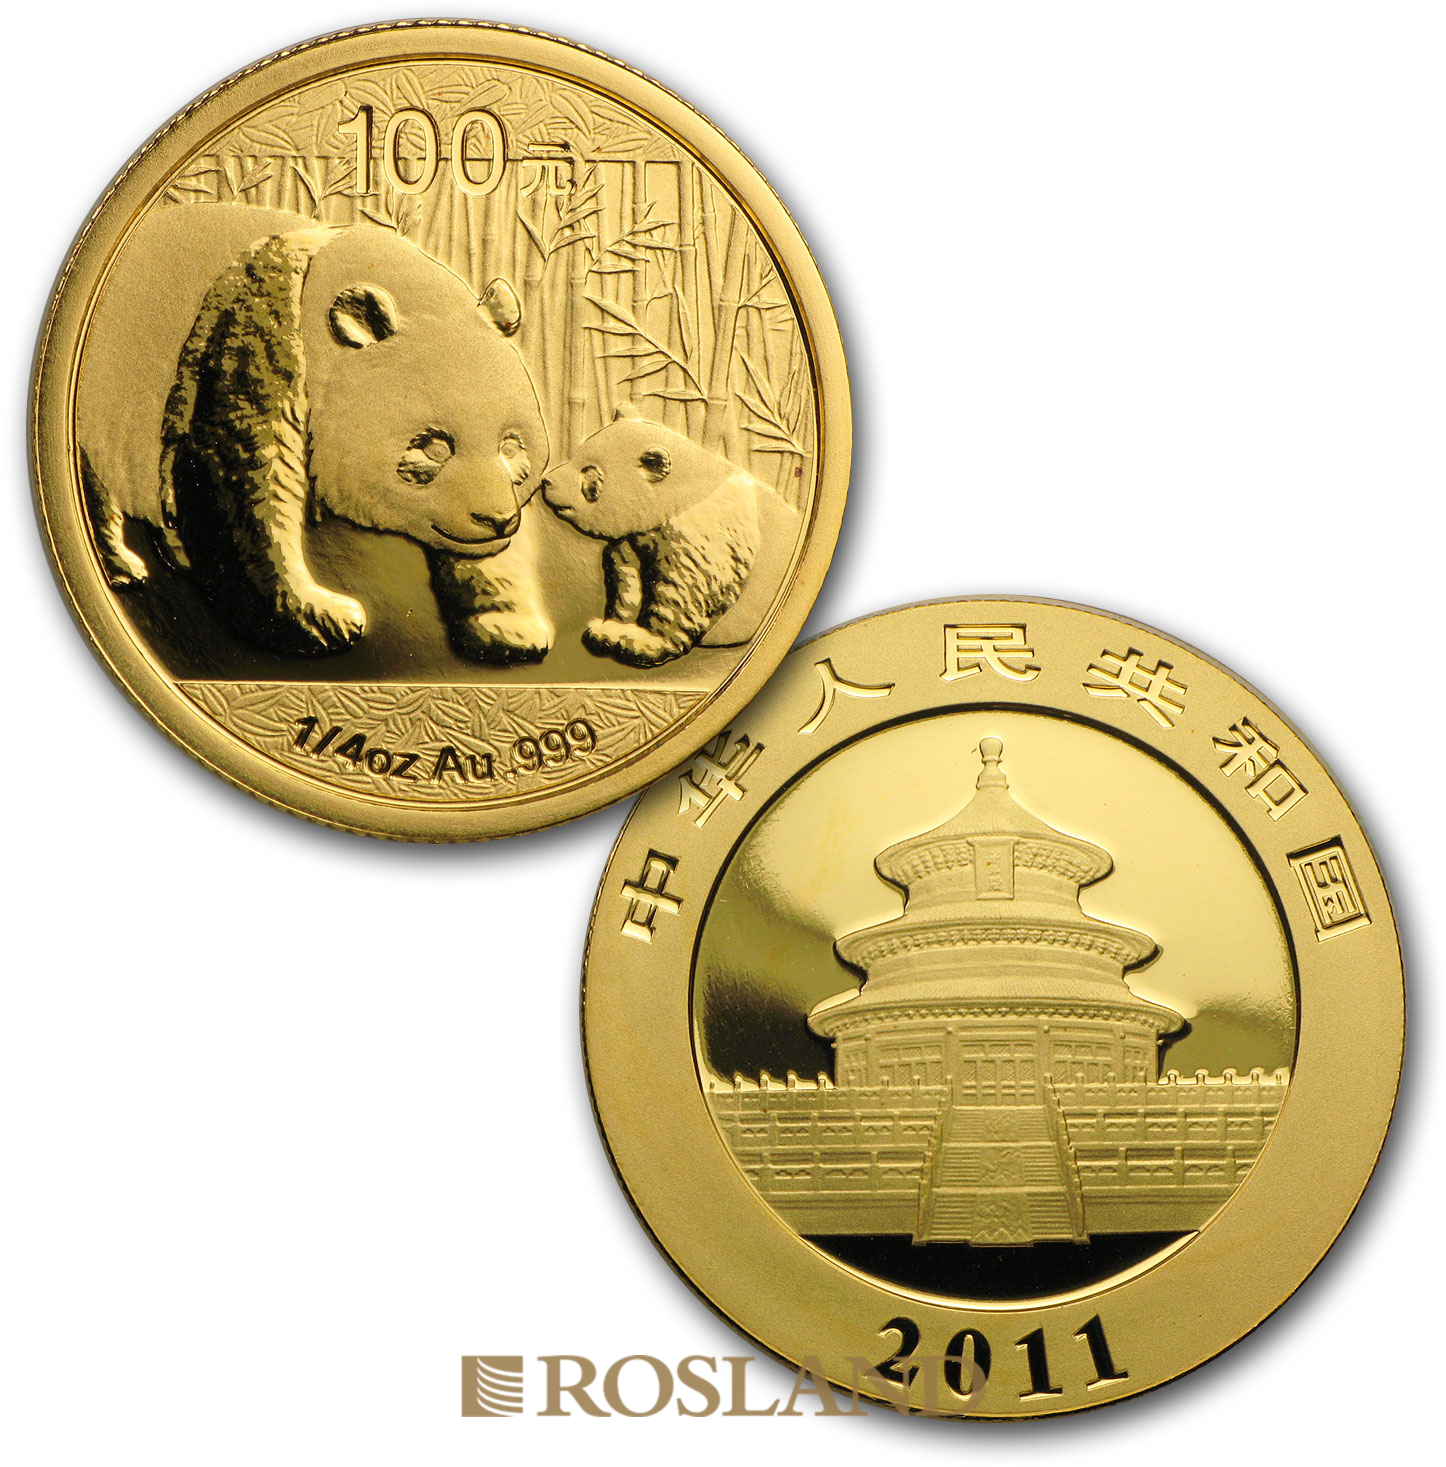 1,9 Unzen 5 Goldmünzen Set China Panda Hase 2011 (Box, Zertifikat)